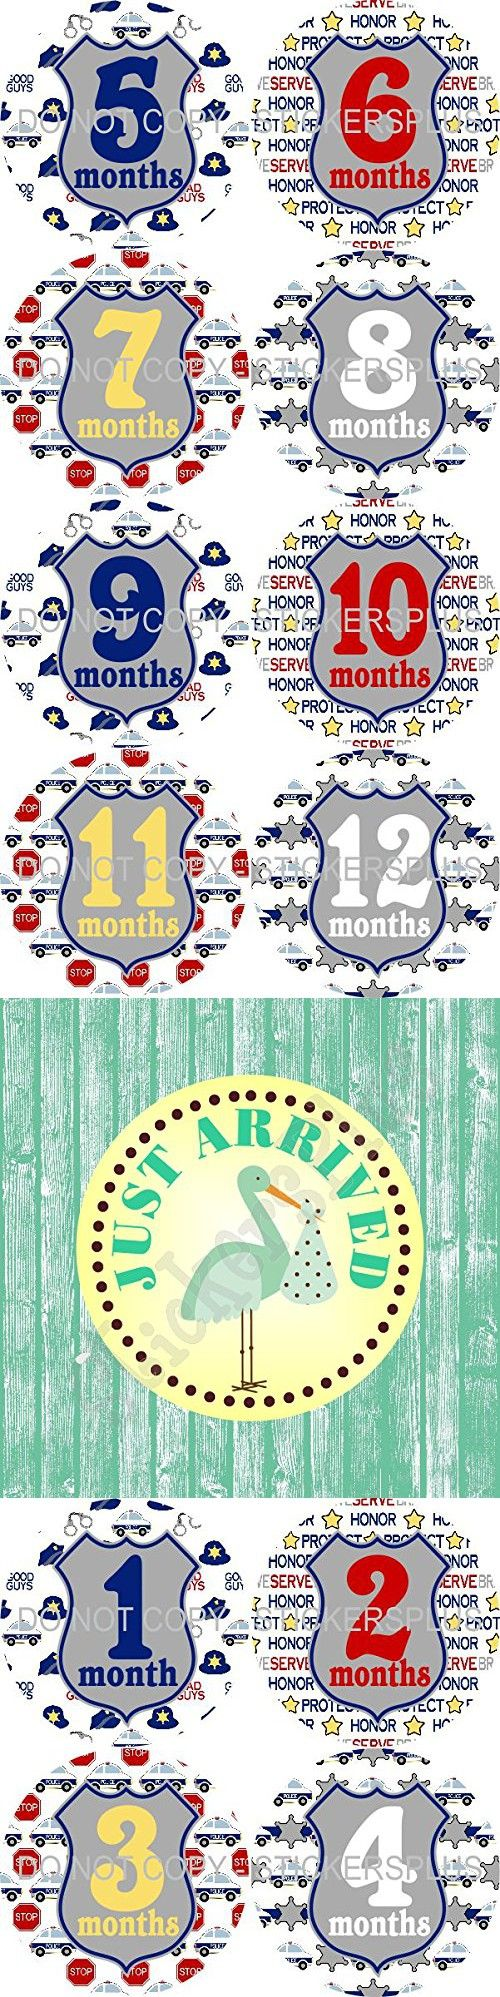 Baby Boy Month Stickers Monthly Baby Milestone Stickers Bodysuit Stickers Police Man Cop Car Badge Baby Age Stickers